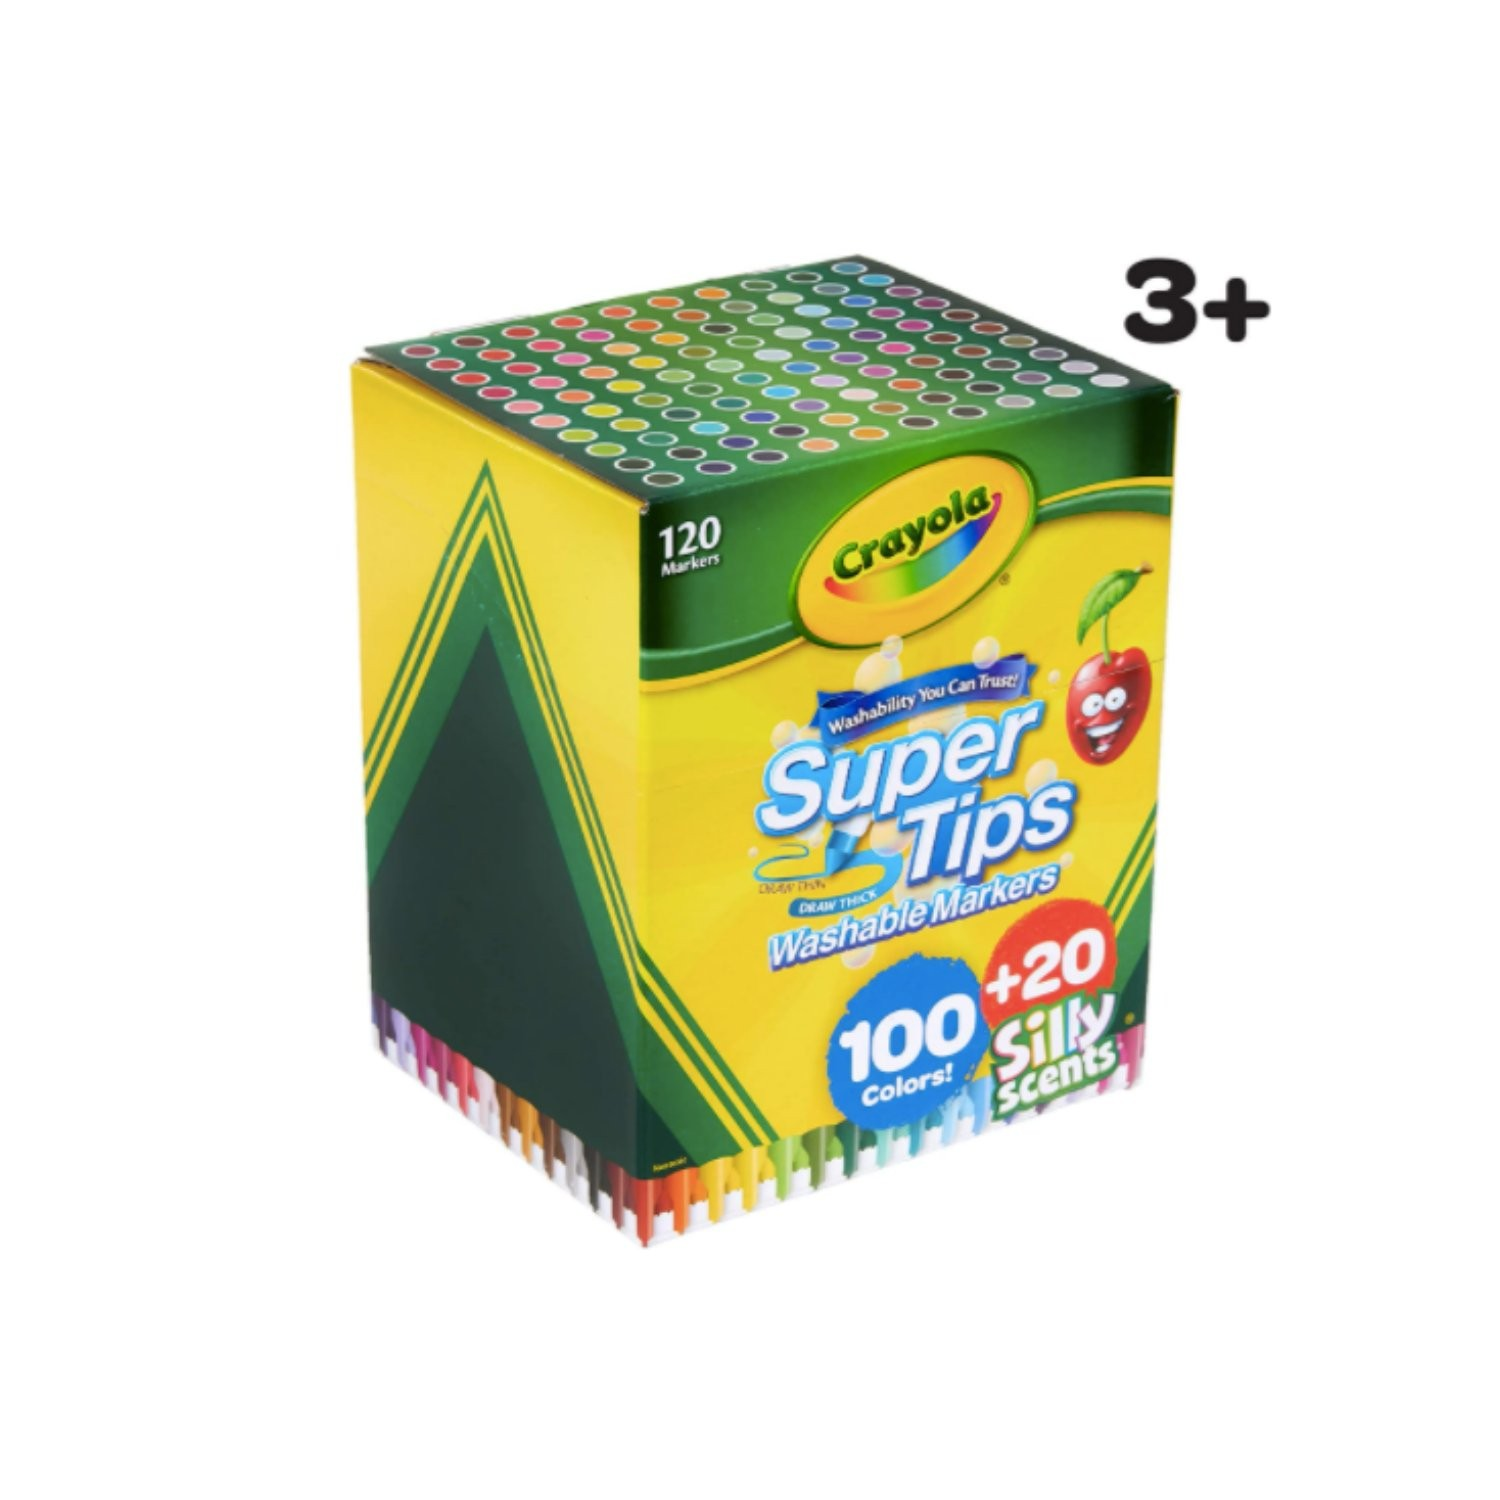 Canetinha Crayola super tips - 100 cores + 20 Silly